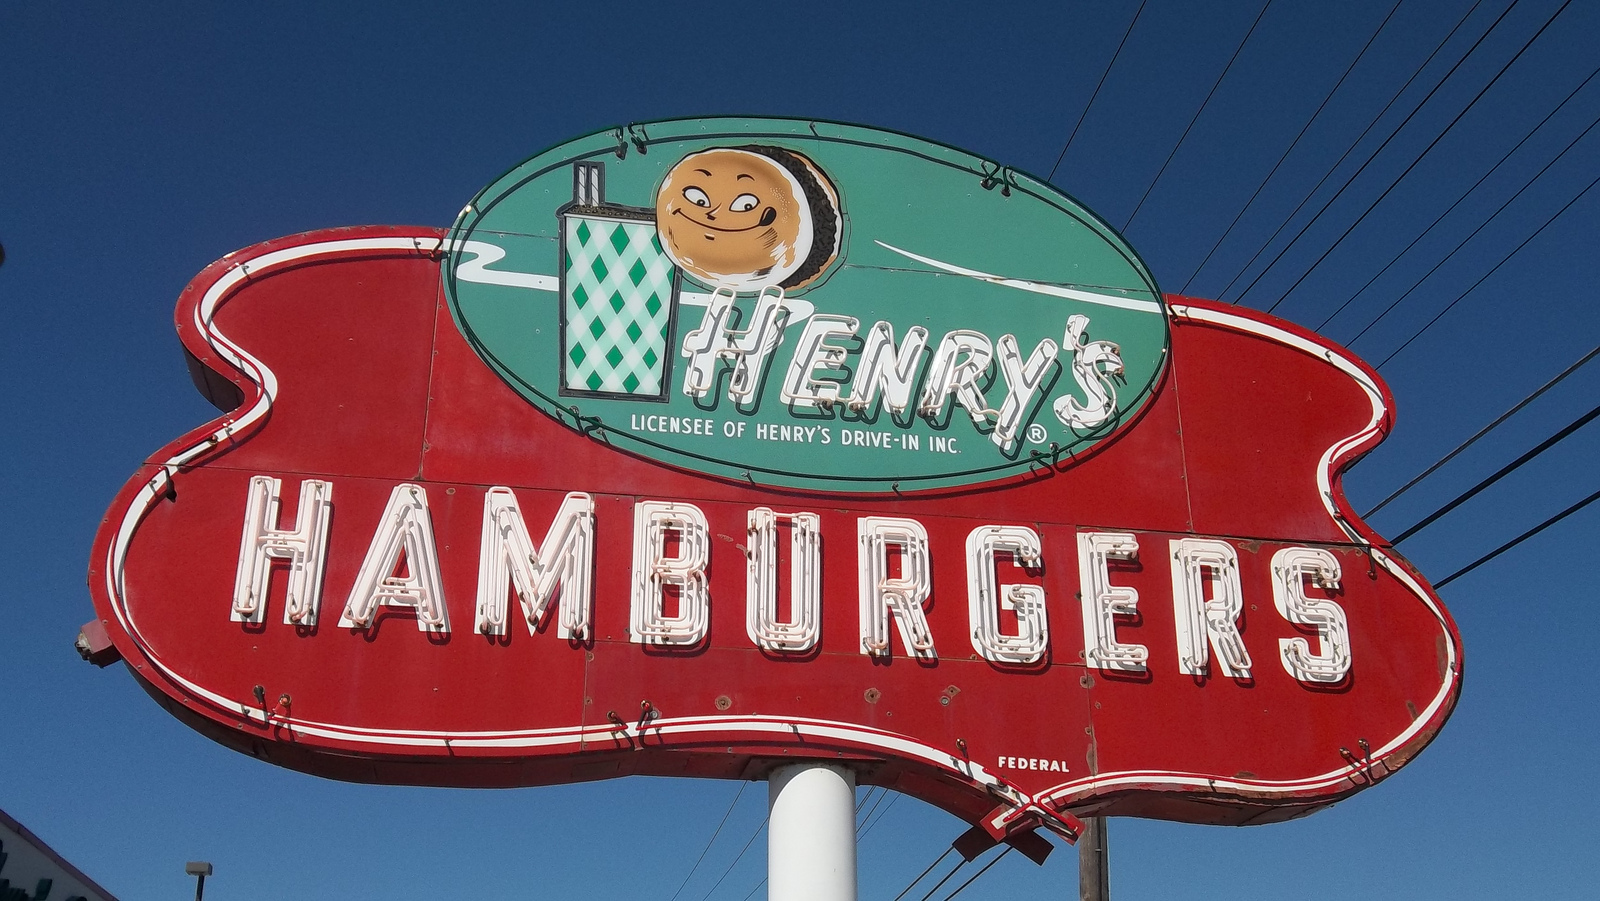 Neon sign for a Henry's Hamburgers restaurant